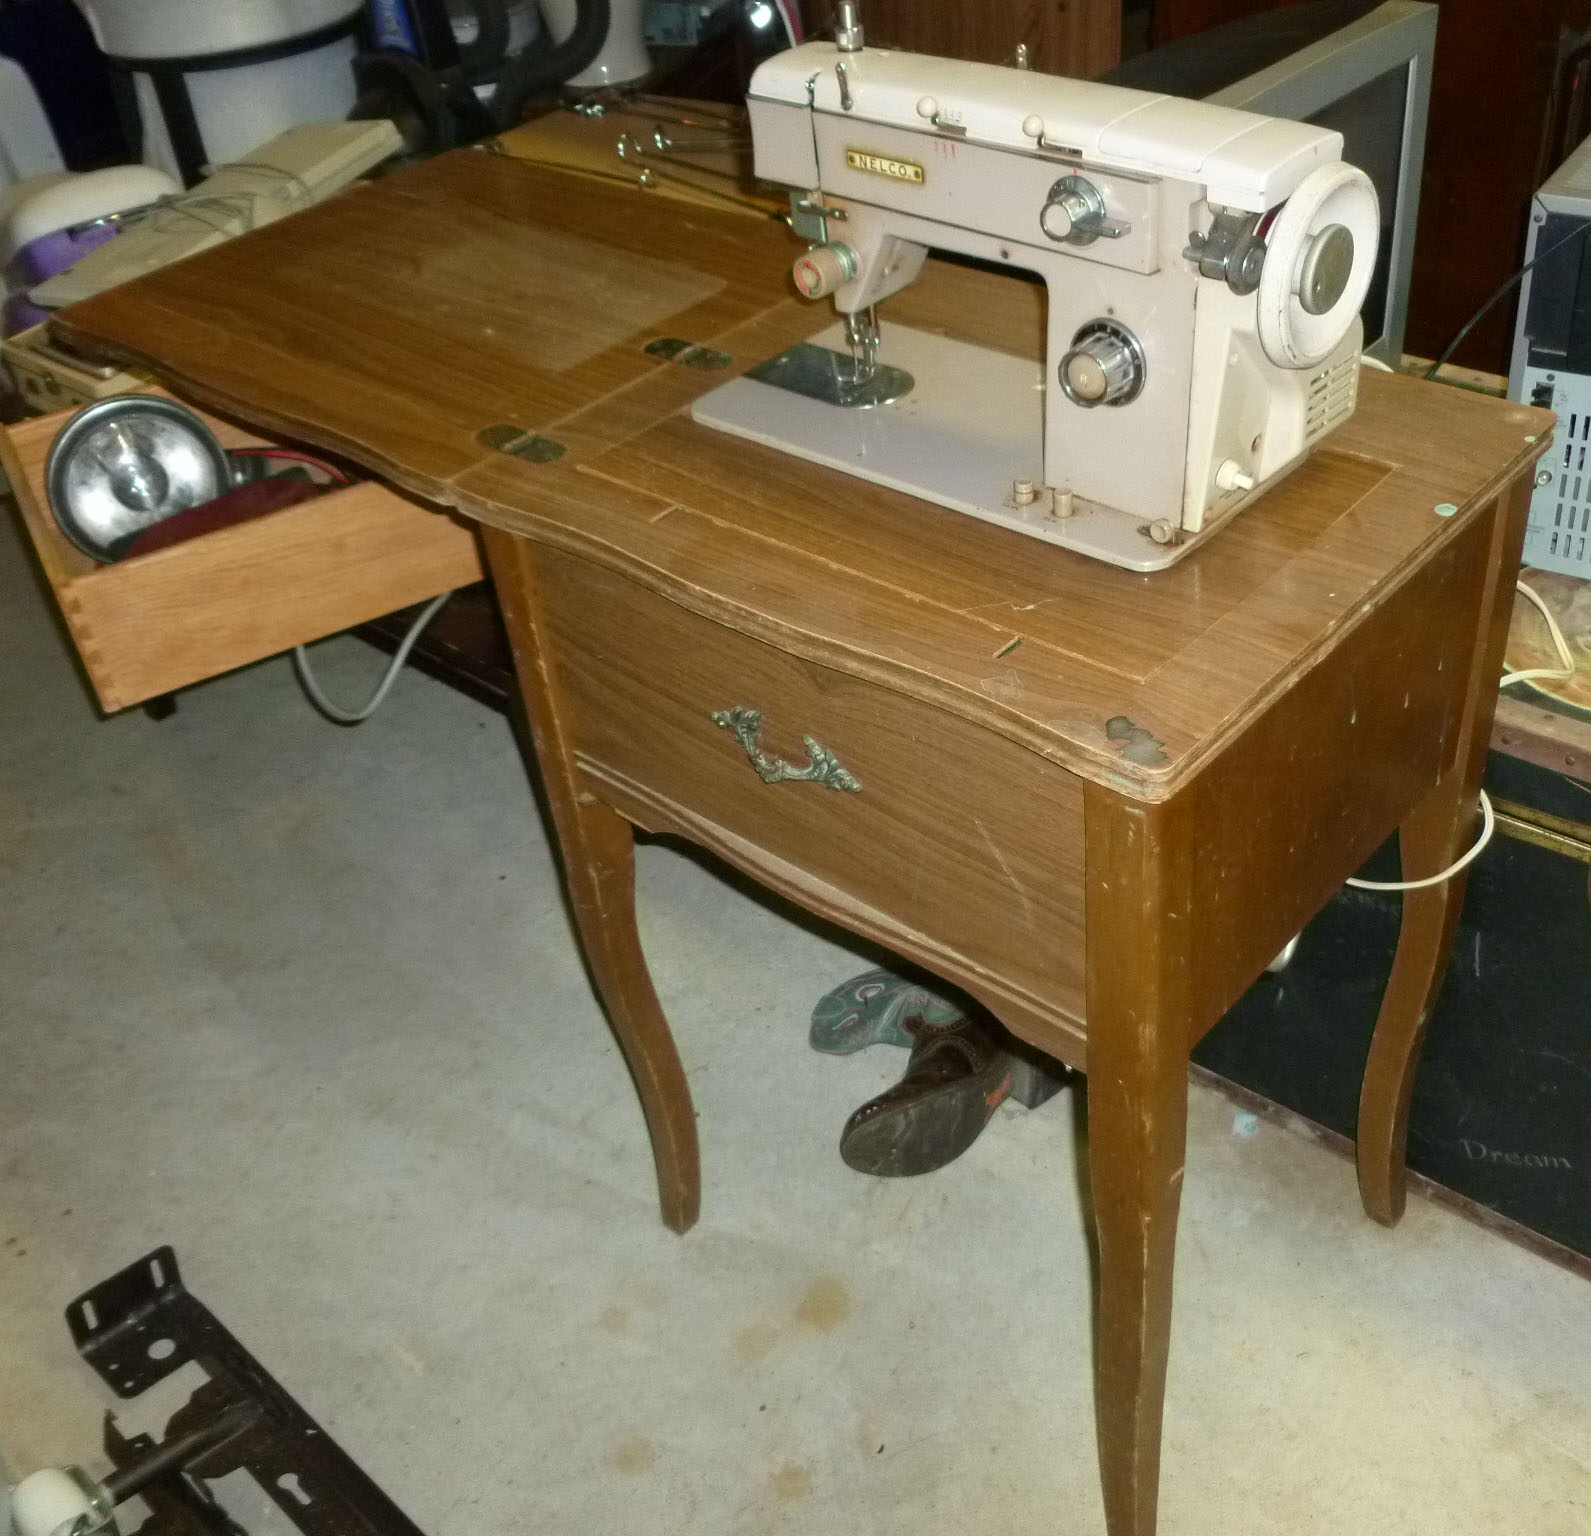 nelco ja38 sewing machine